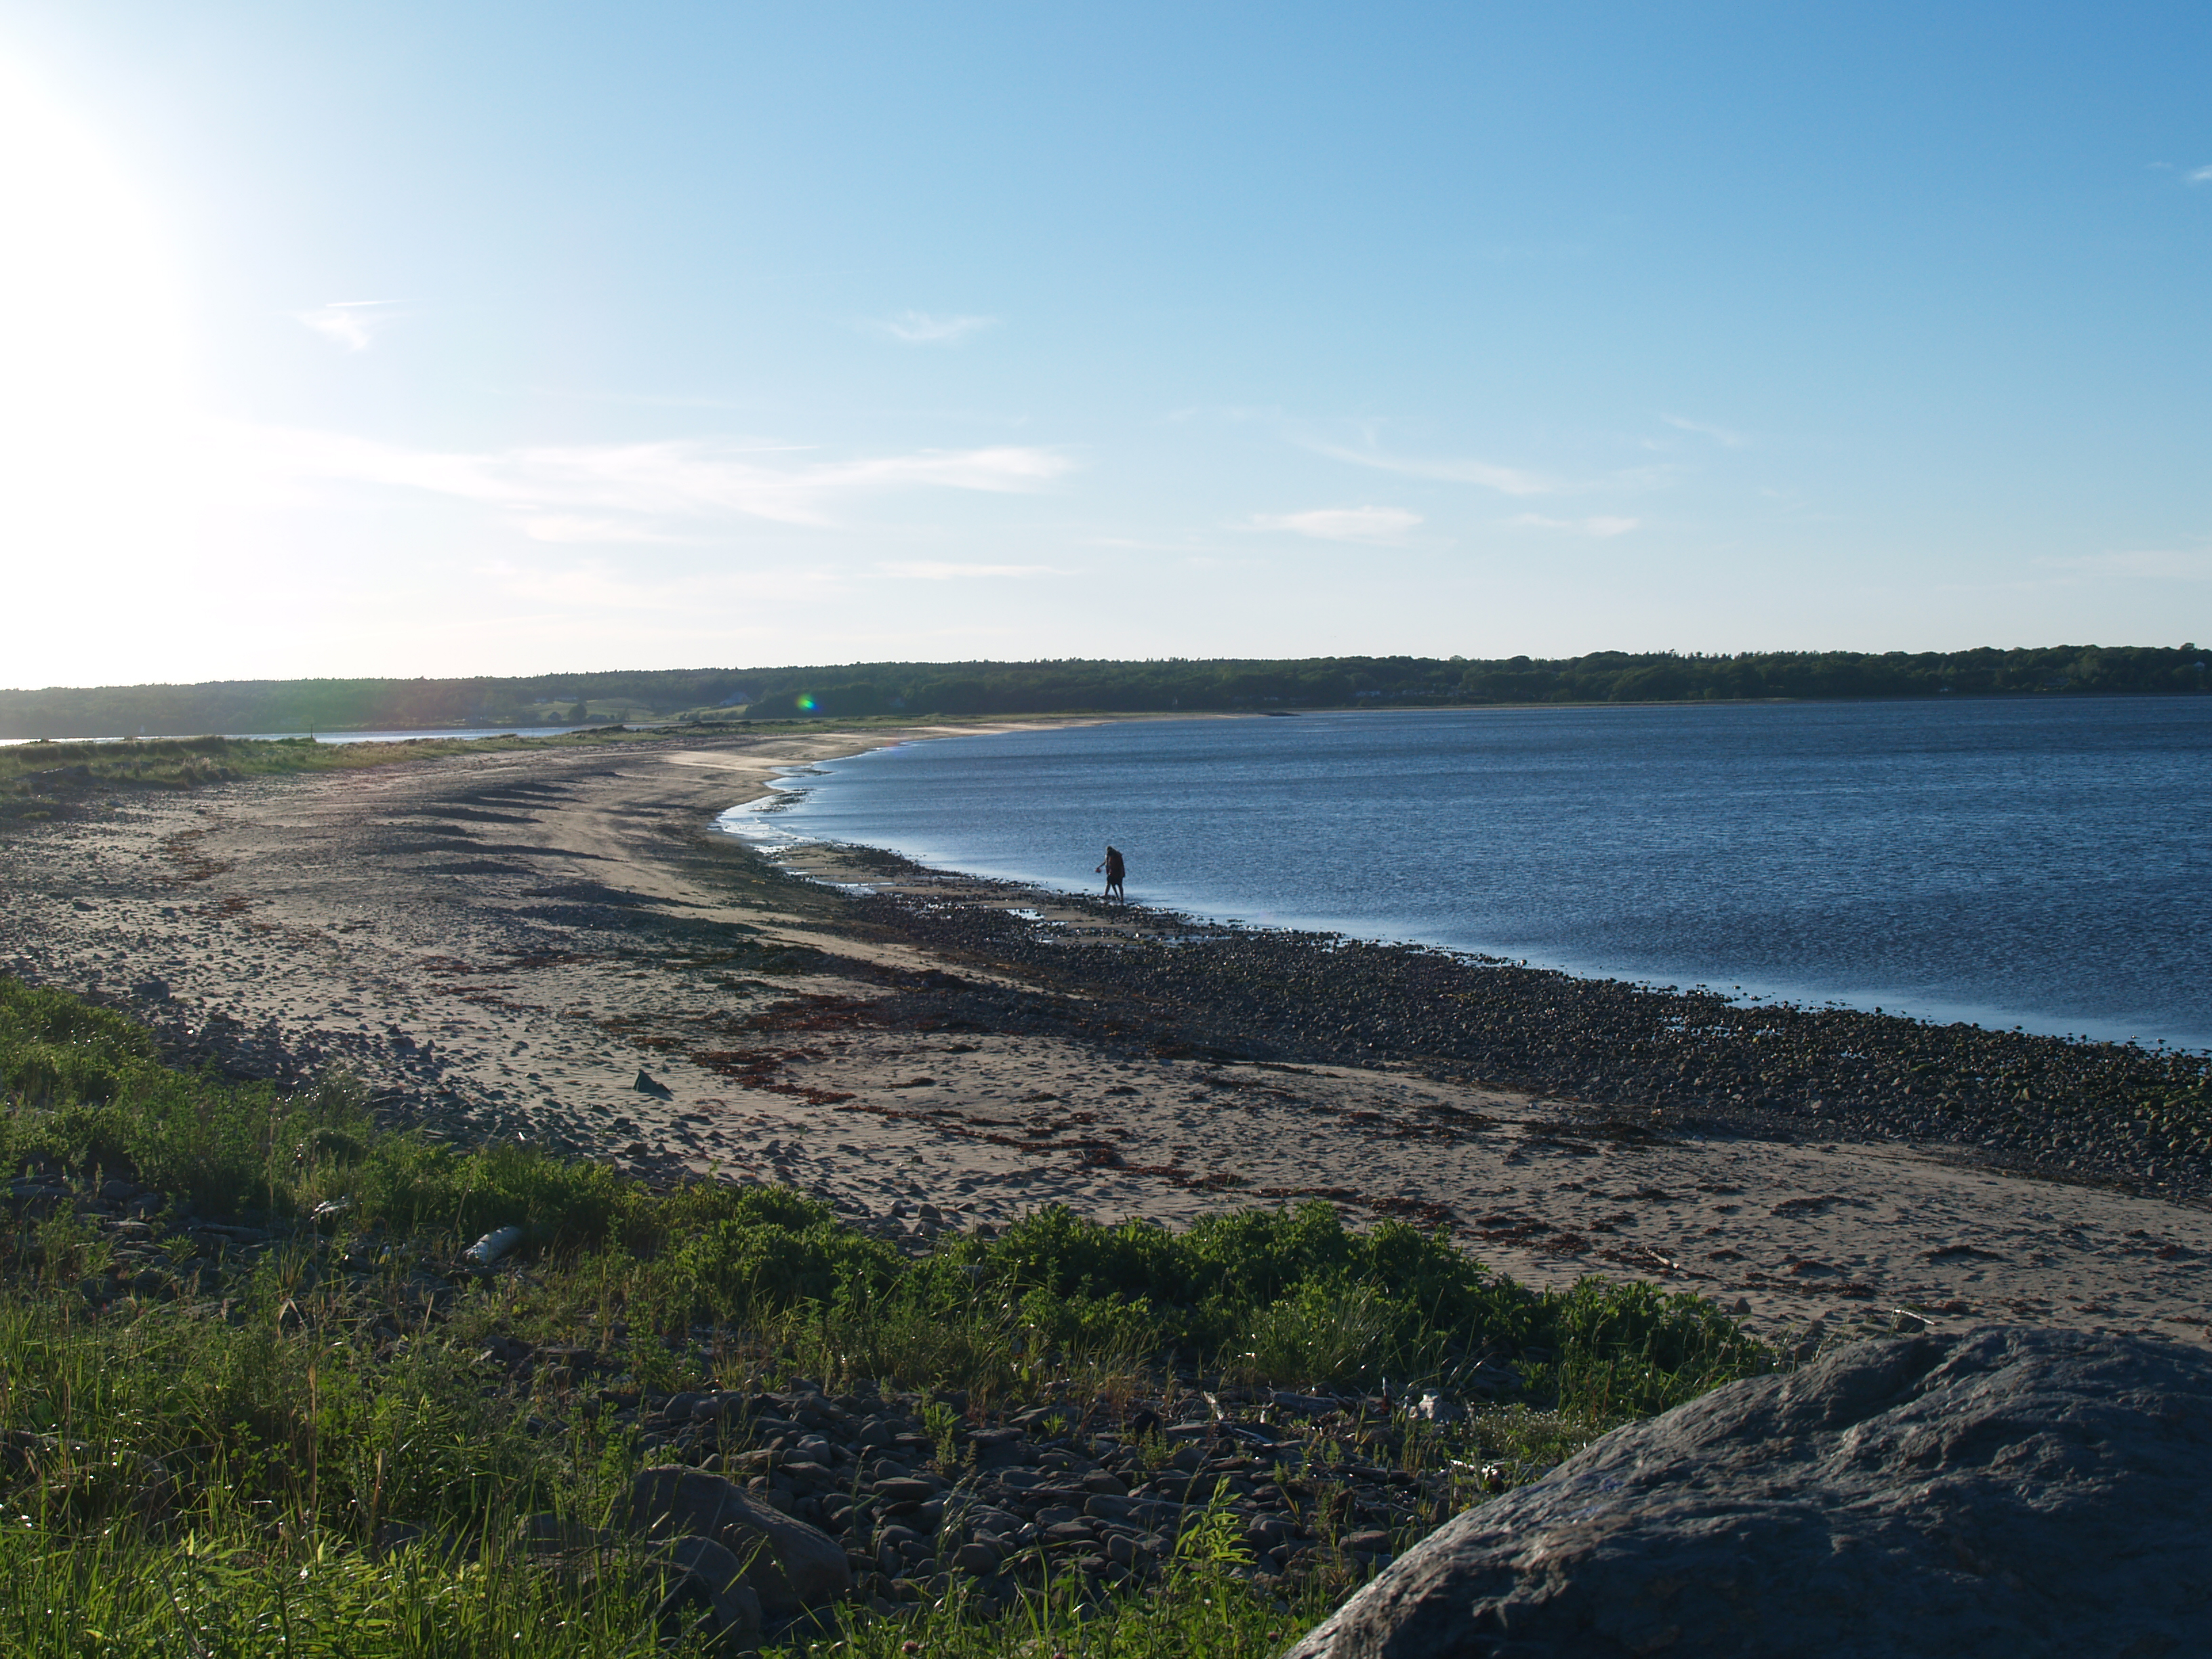 Once a very popular recreational area, after the pulp mill effluent began flowing Lighthouse Beach at Pictou Landing became paradise lost. Photo by Joan Baxter